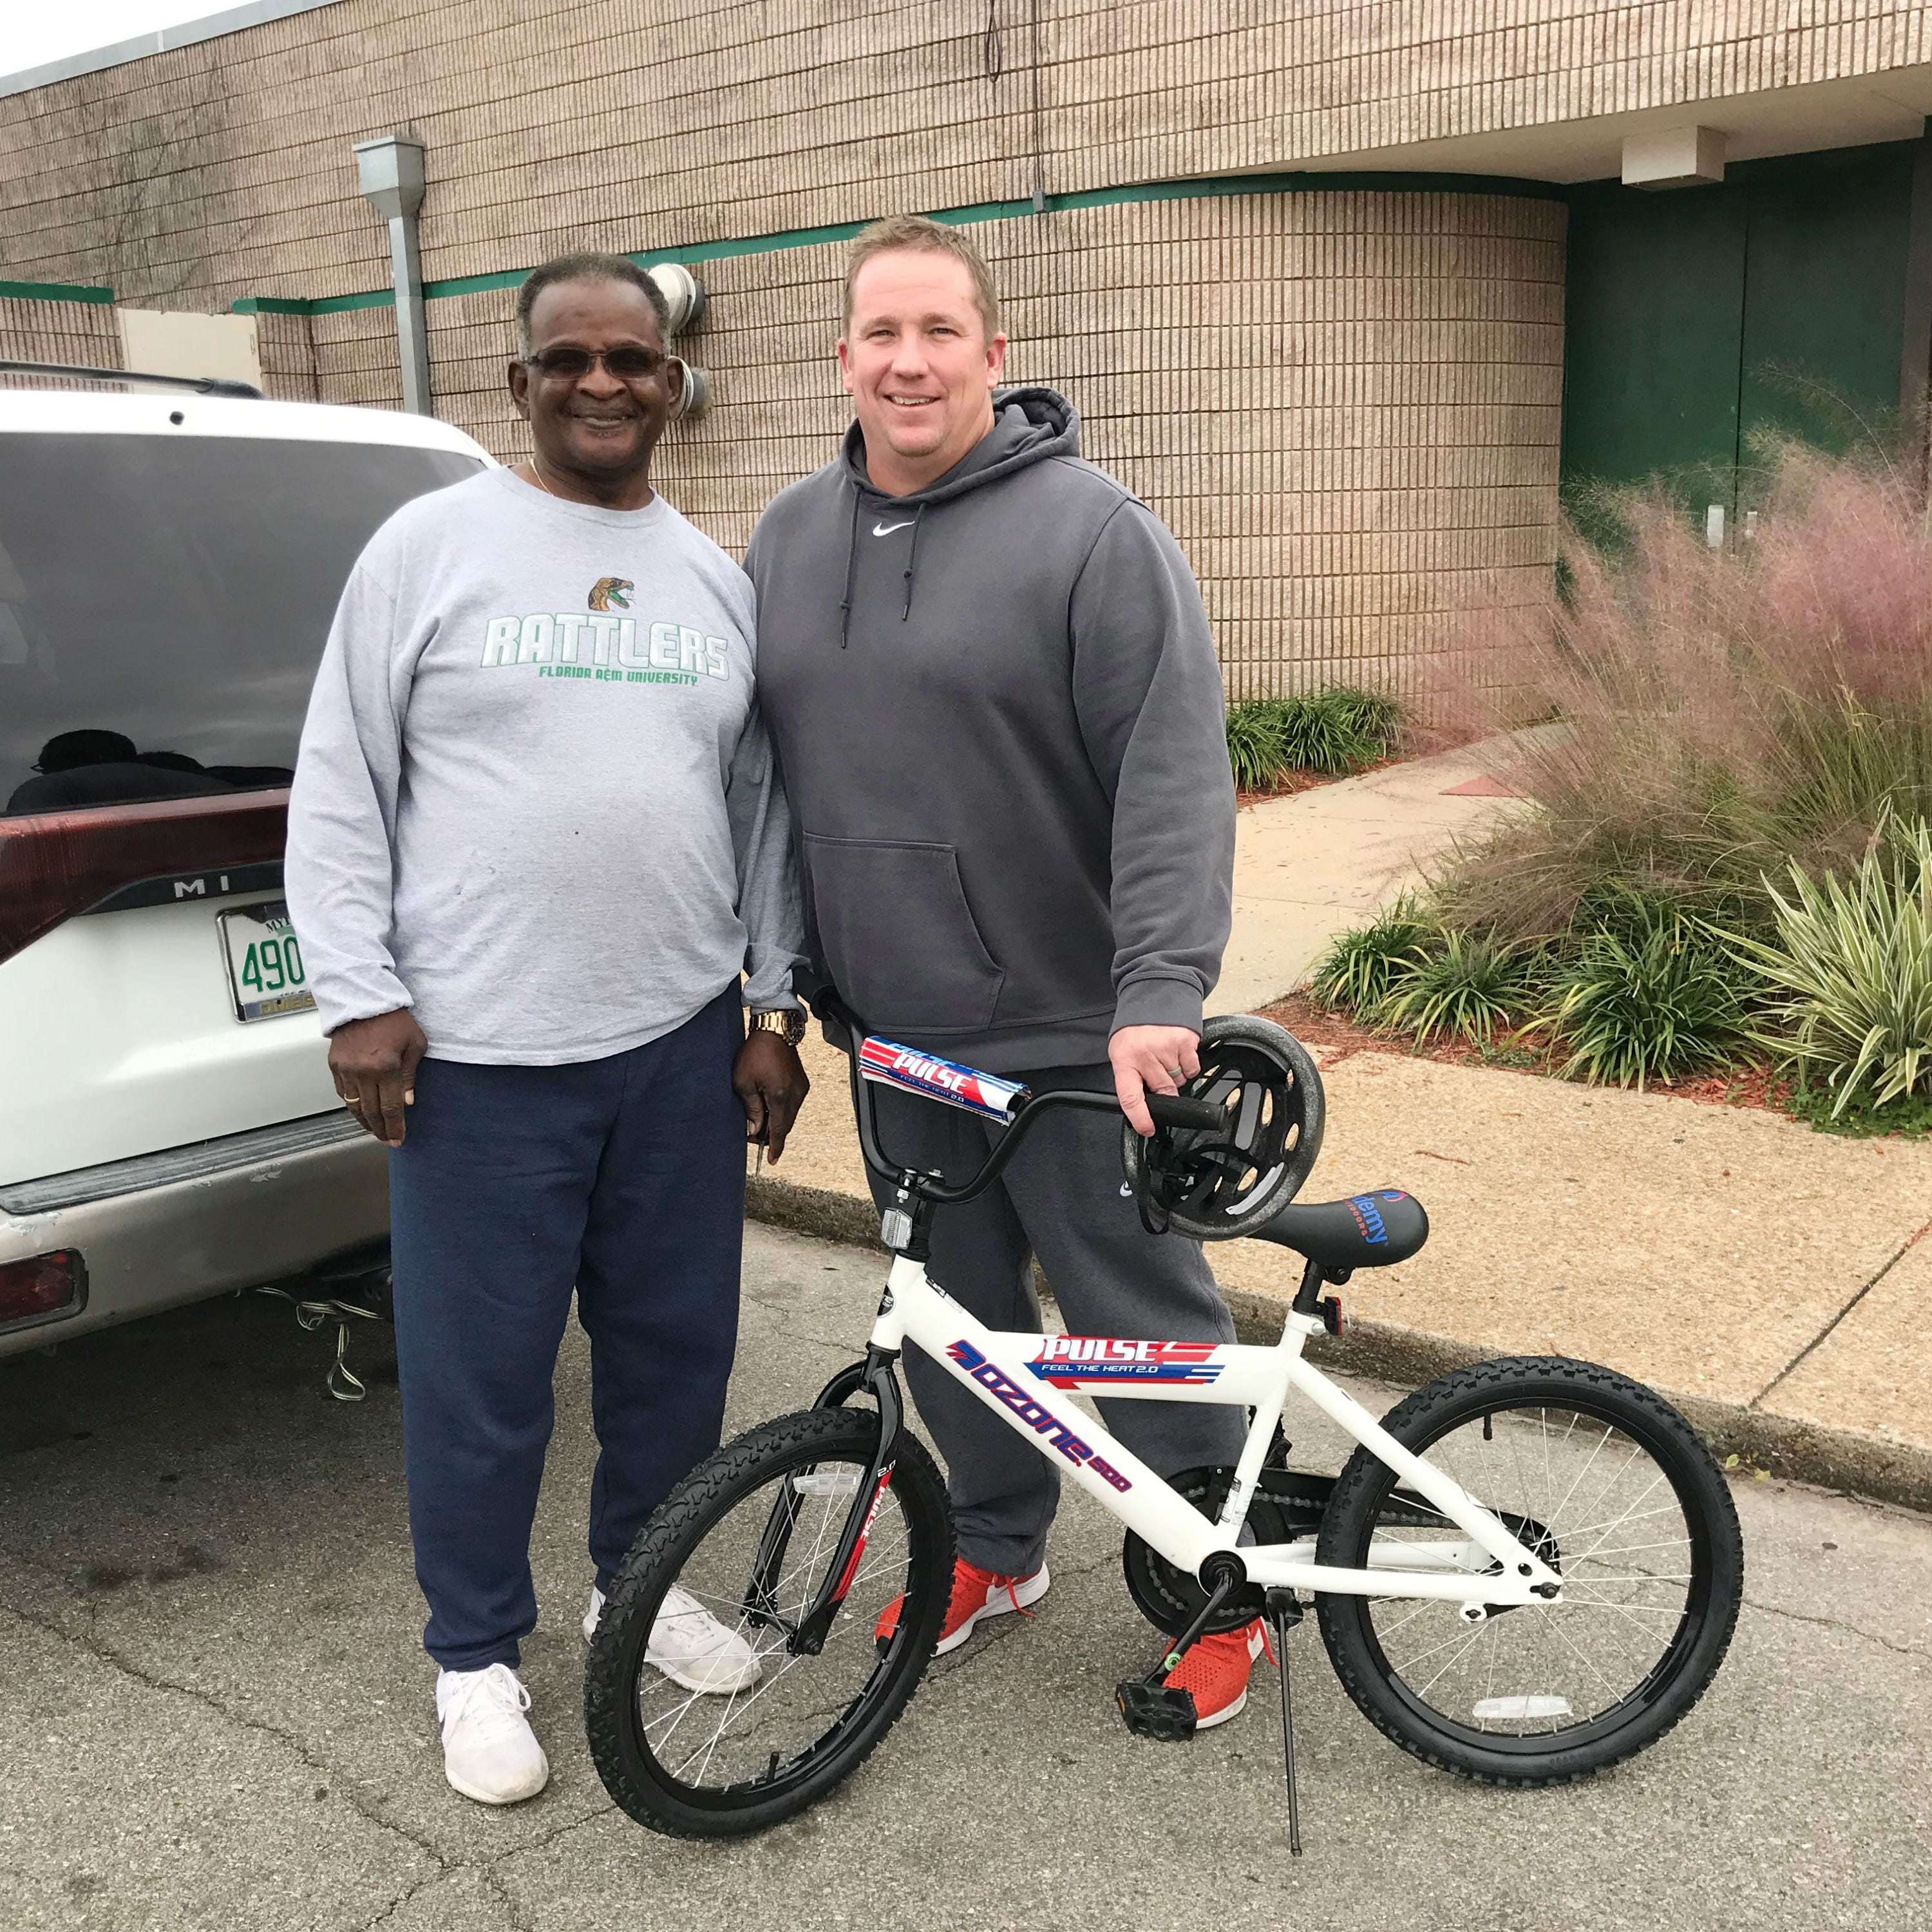 FAMU class of 1971 alum Johnny Barnes (left) donated a bike to the toy drive on Dec. 13 at the Galimore-Powell Field House. He presented the gift to linebackers coach Ryan Smith.